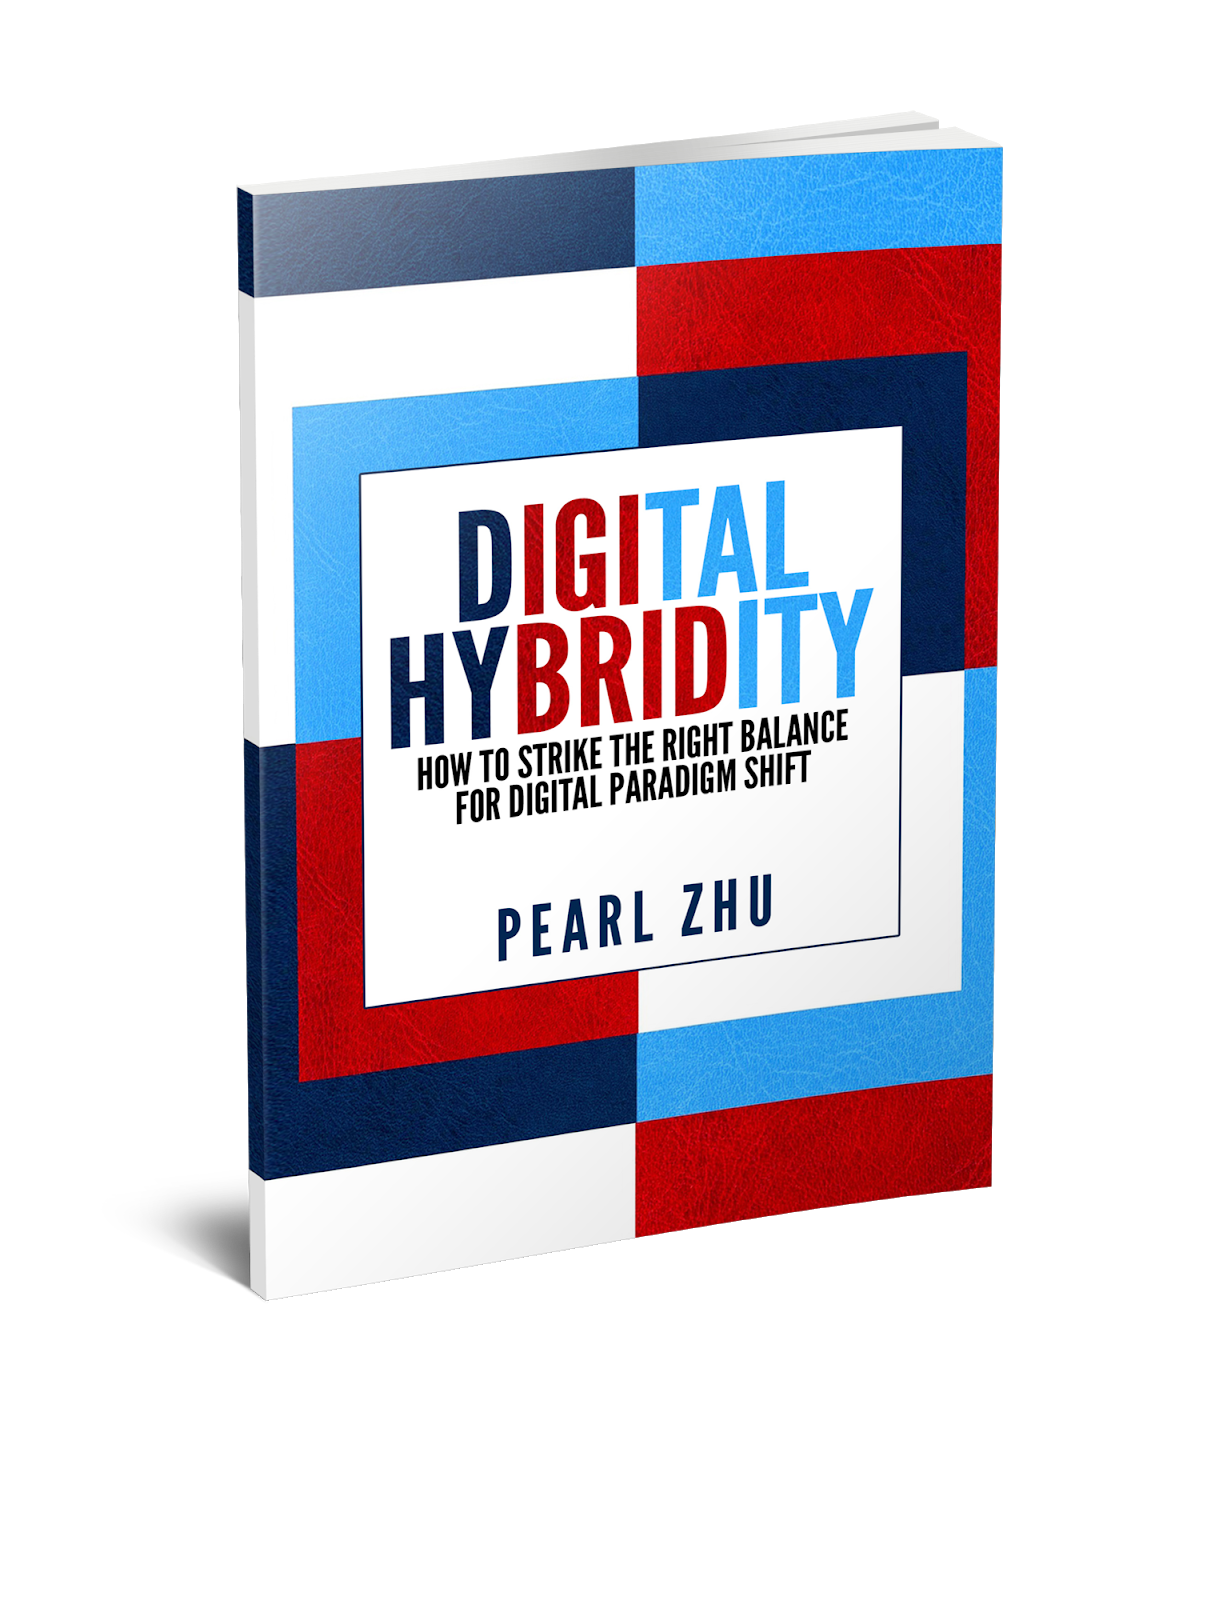 Digital Hybridity